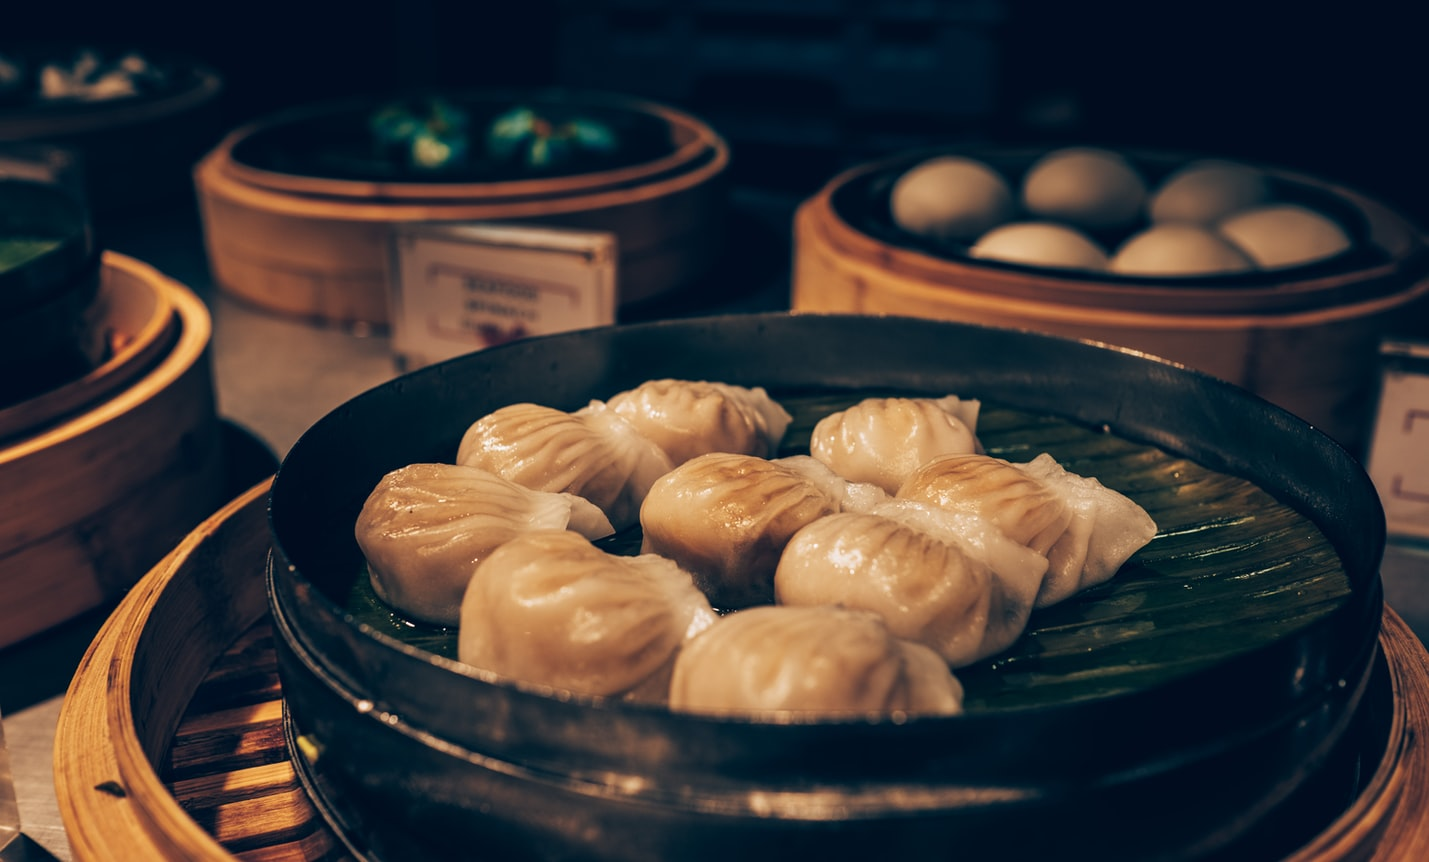 You choose your pick of meat to put inside the dumpling. (Image: Unsplash / CC0 1.0)